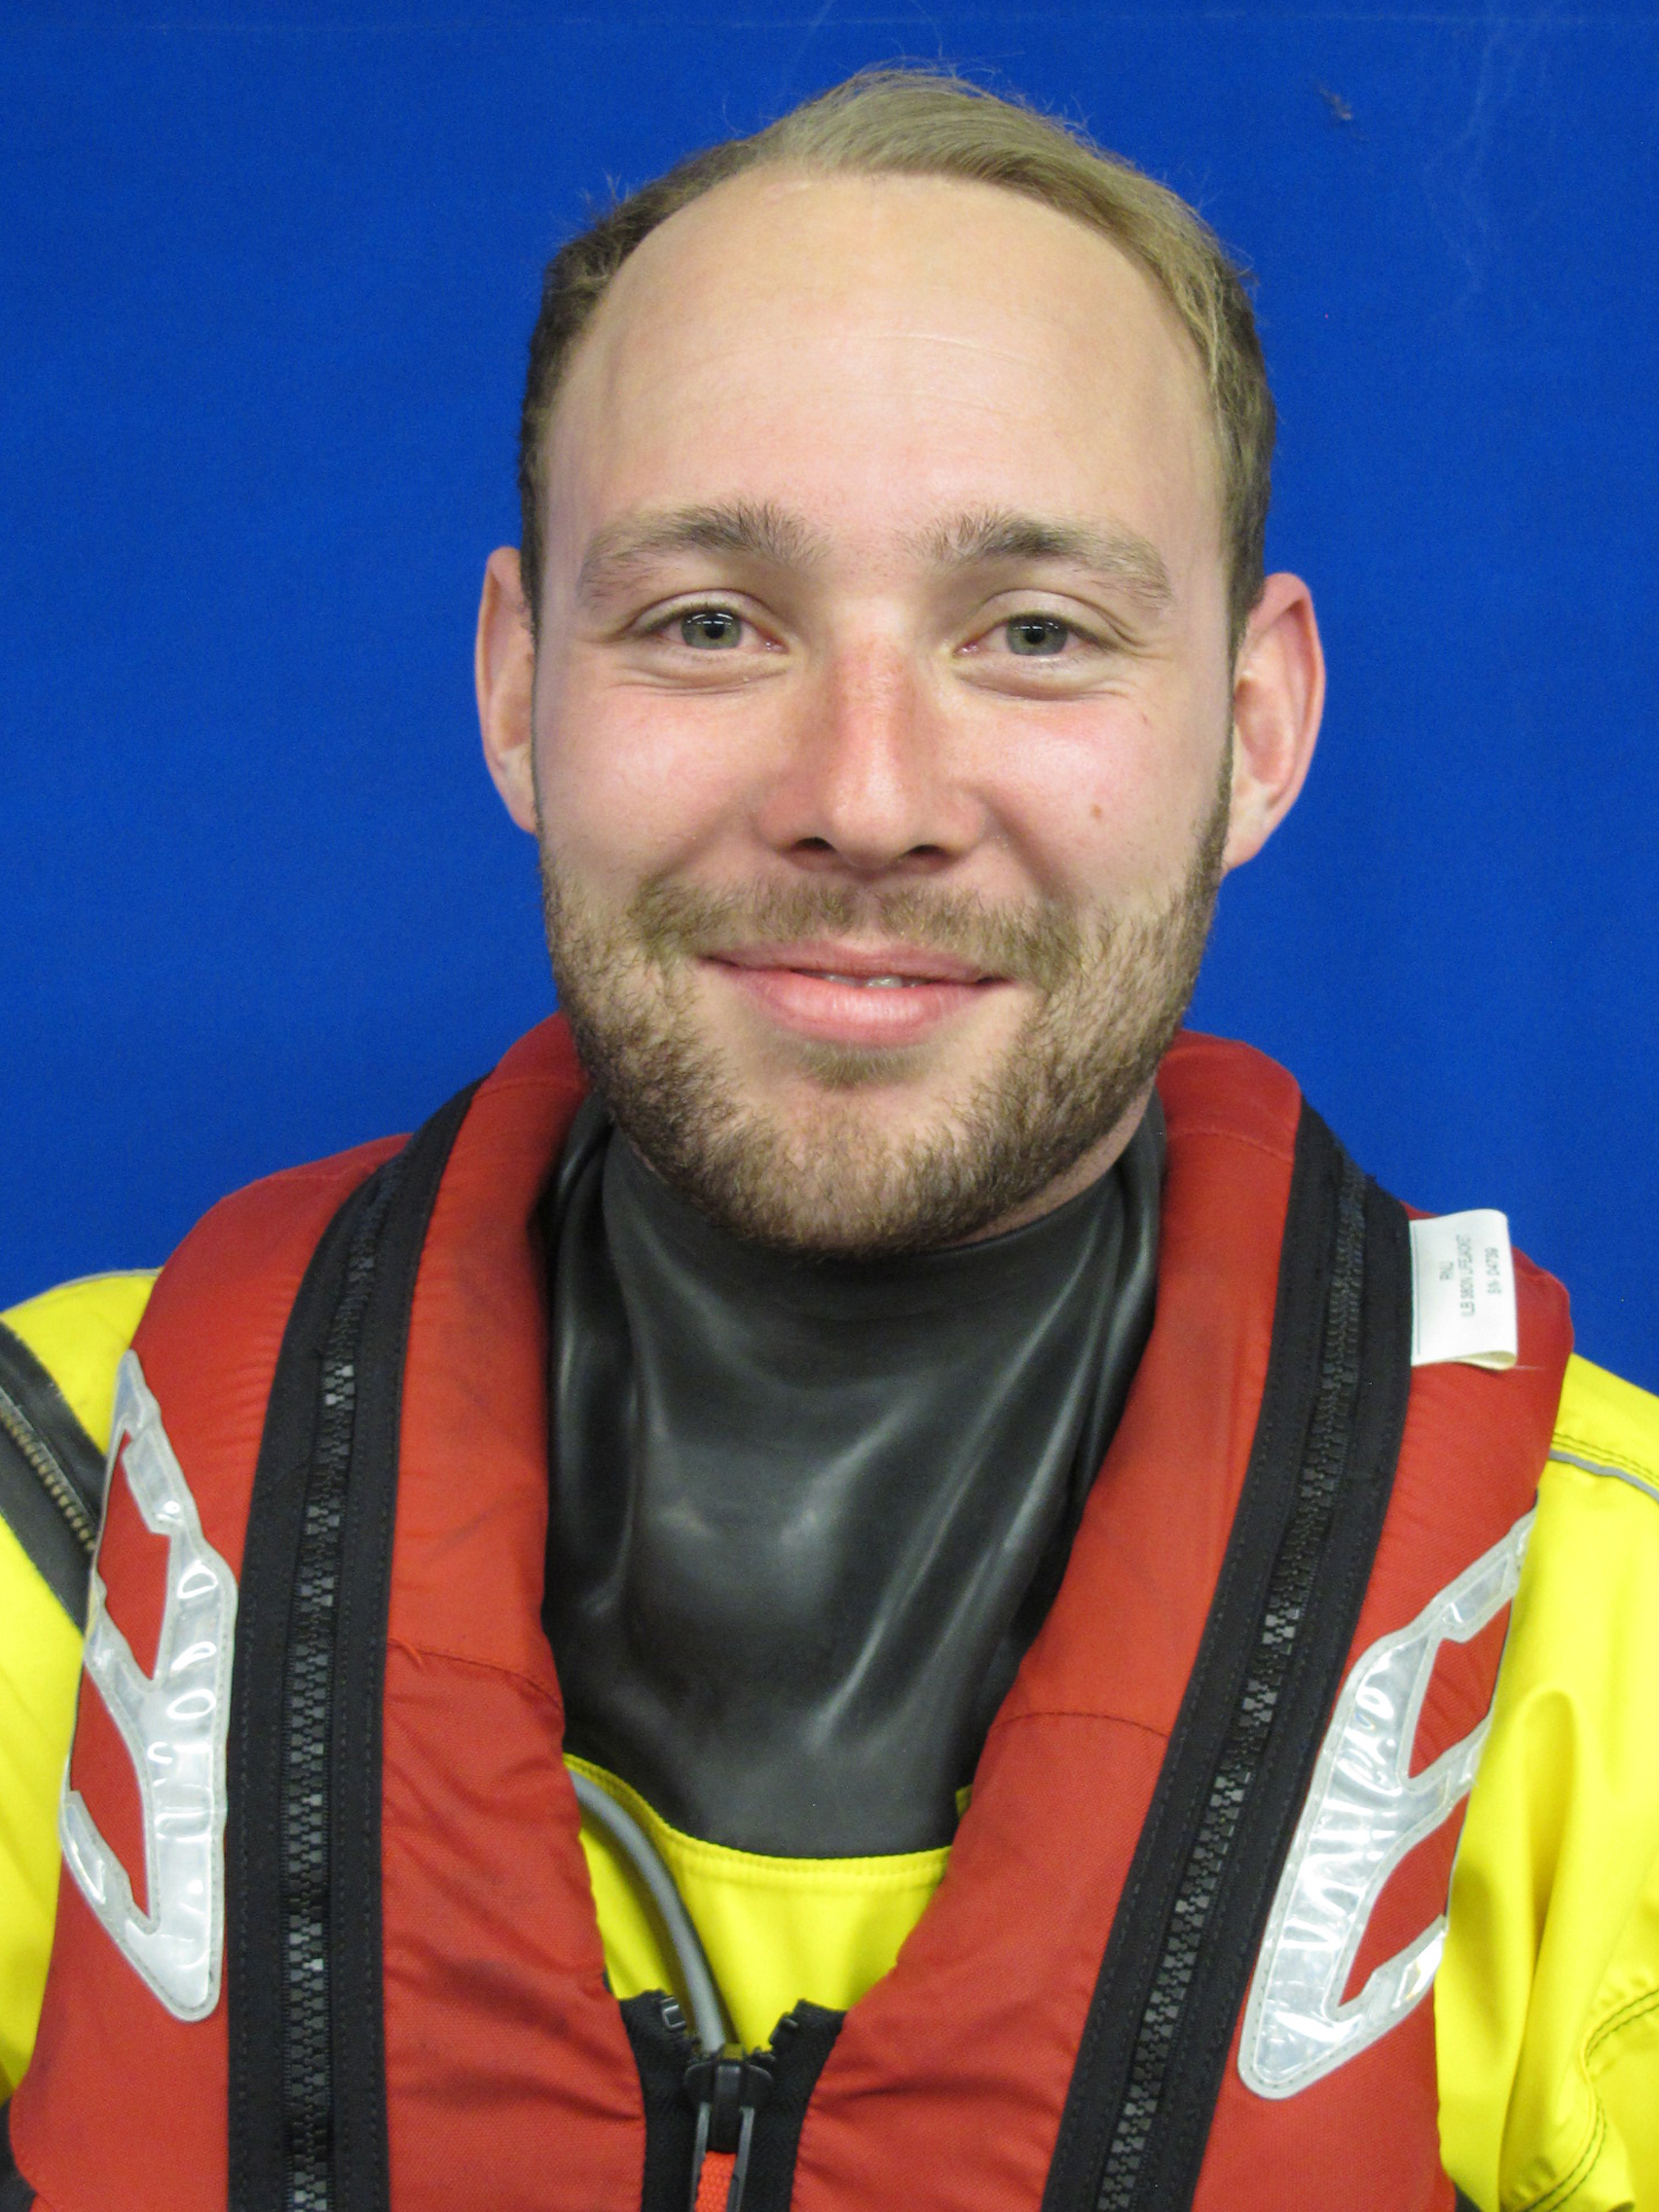 Tom Shanley. Operations team. RNLI Dart